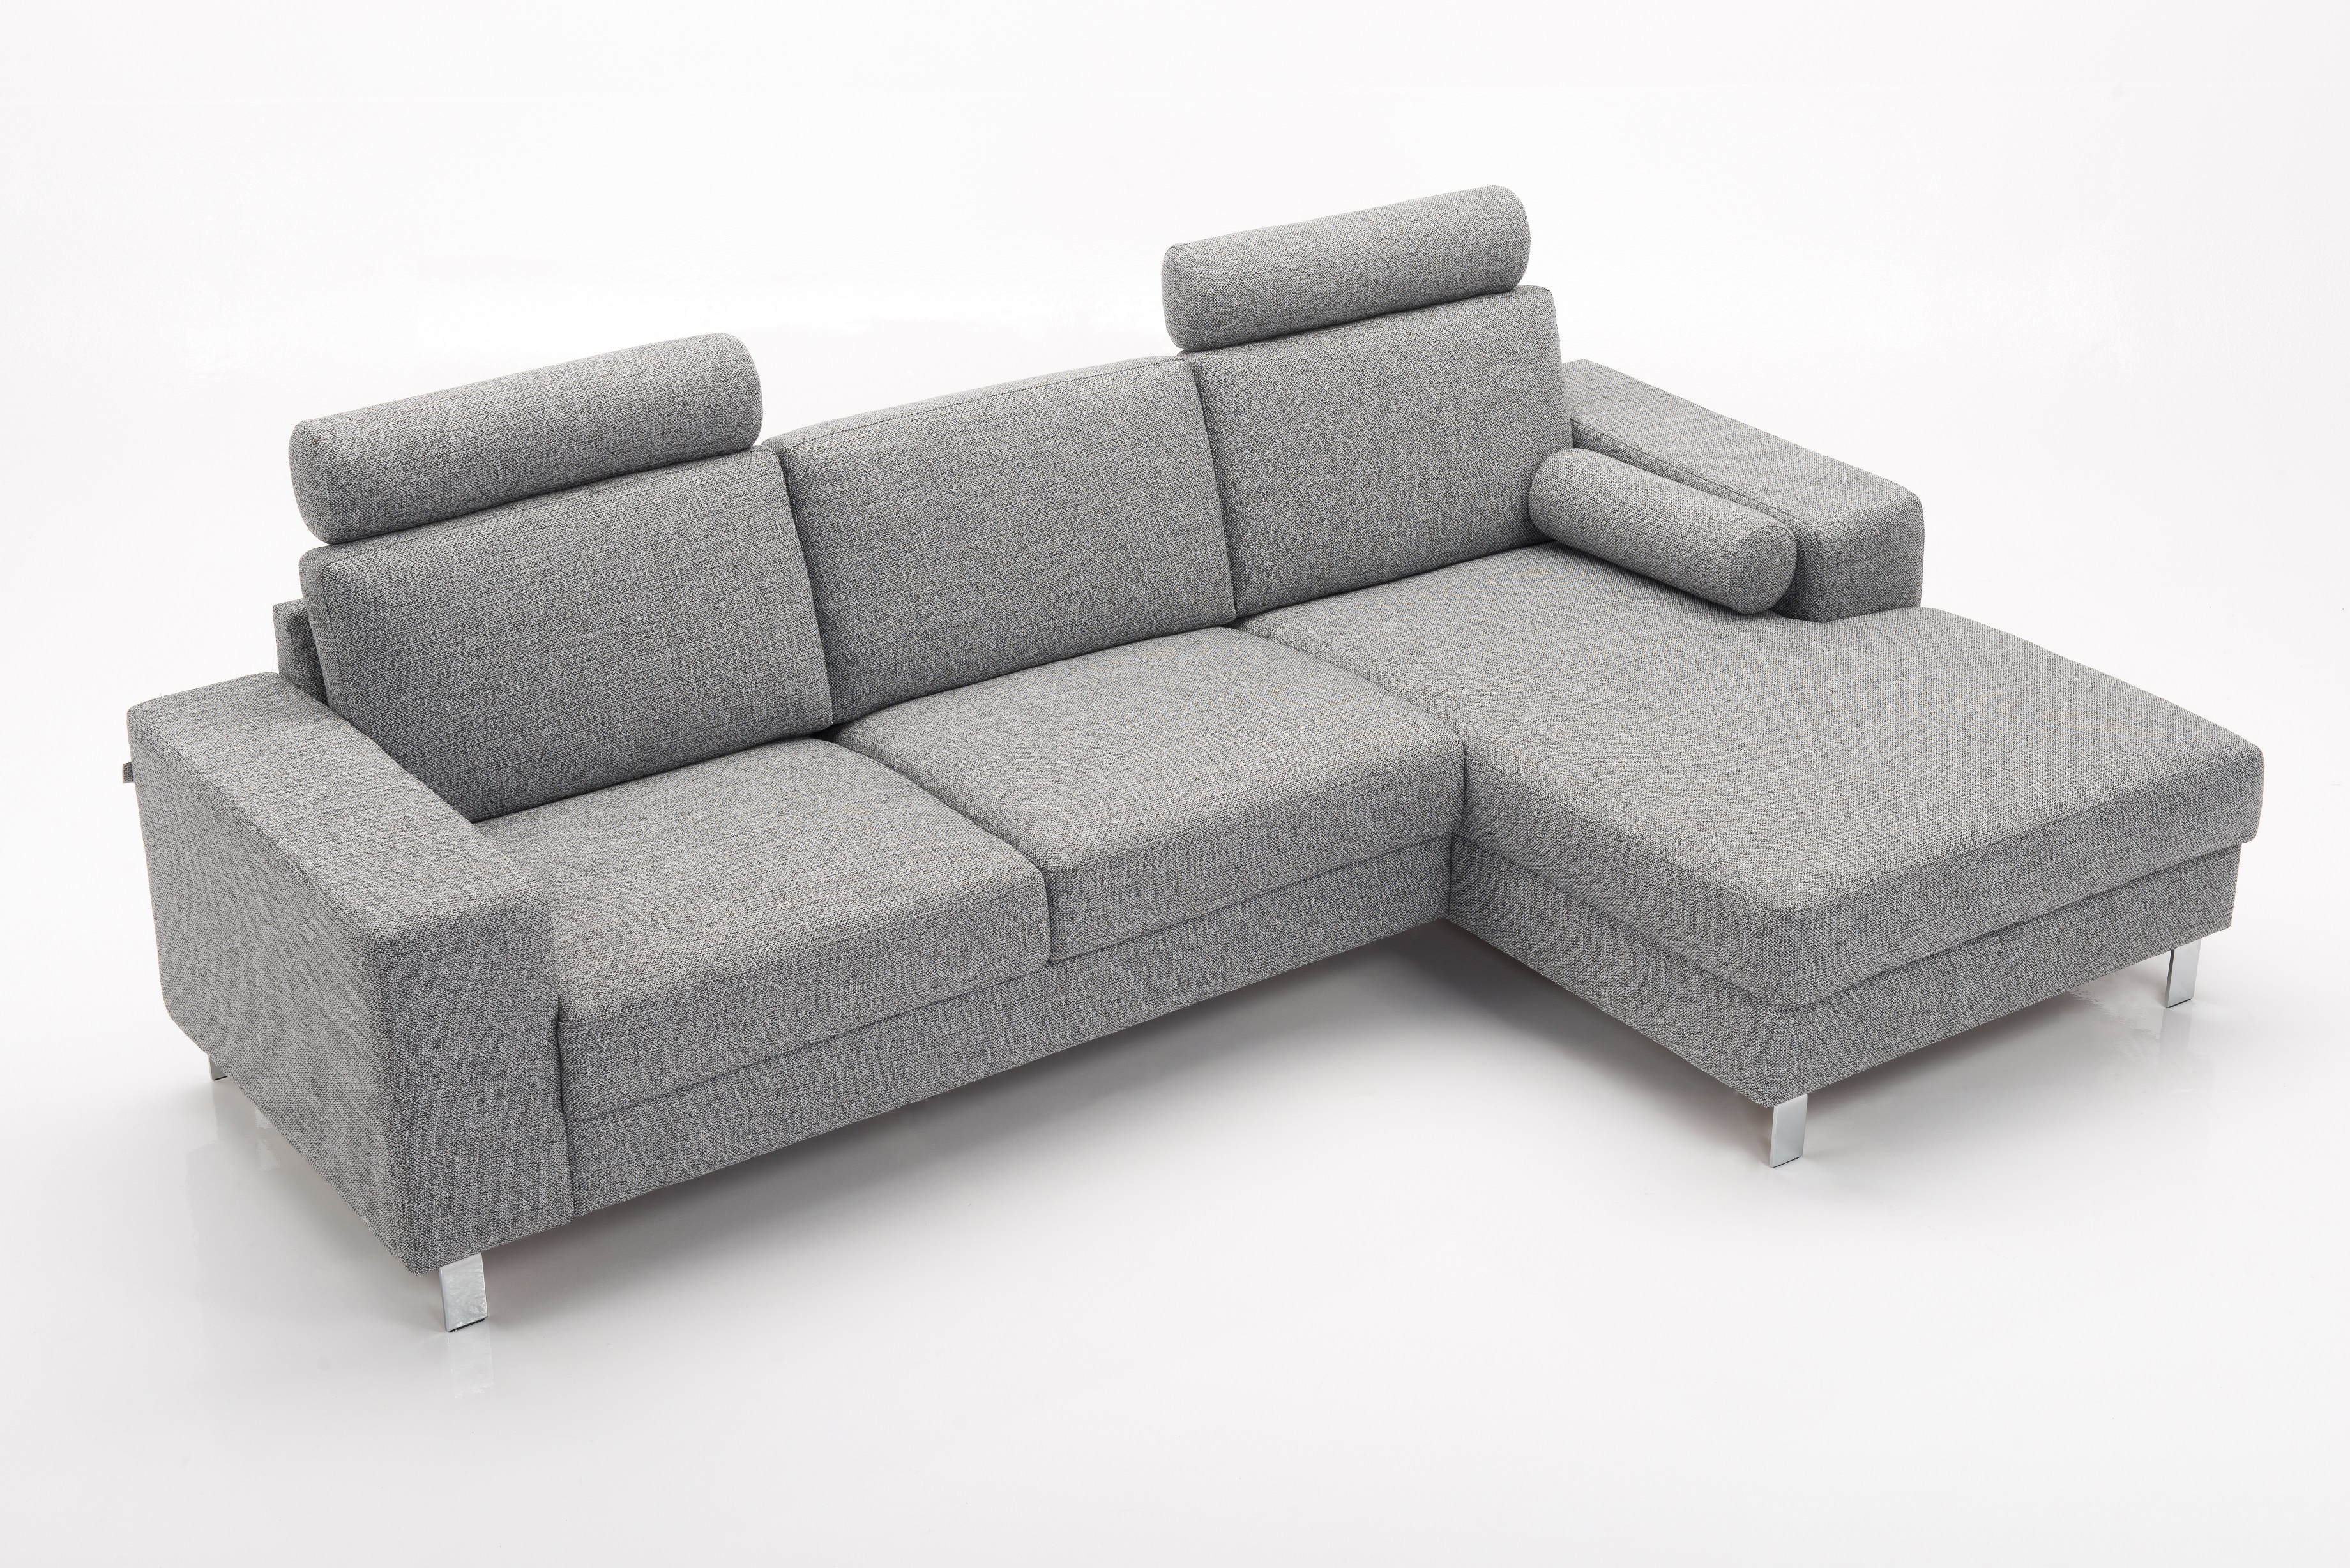 sovesofa chaiselong billig